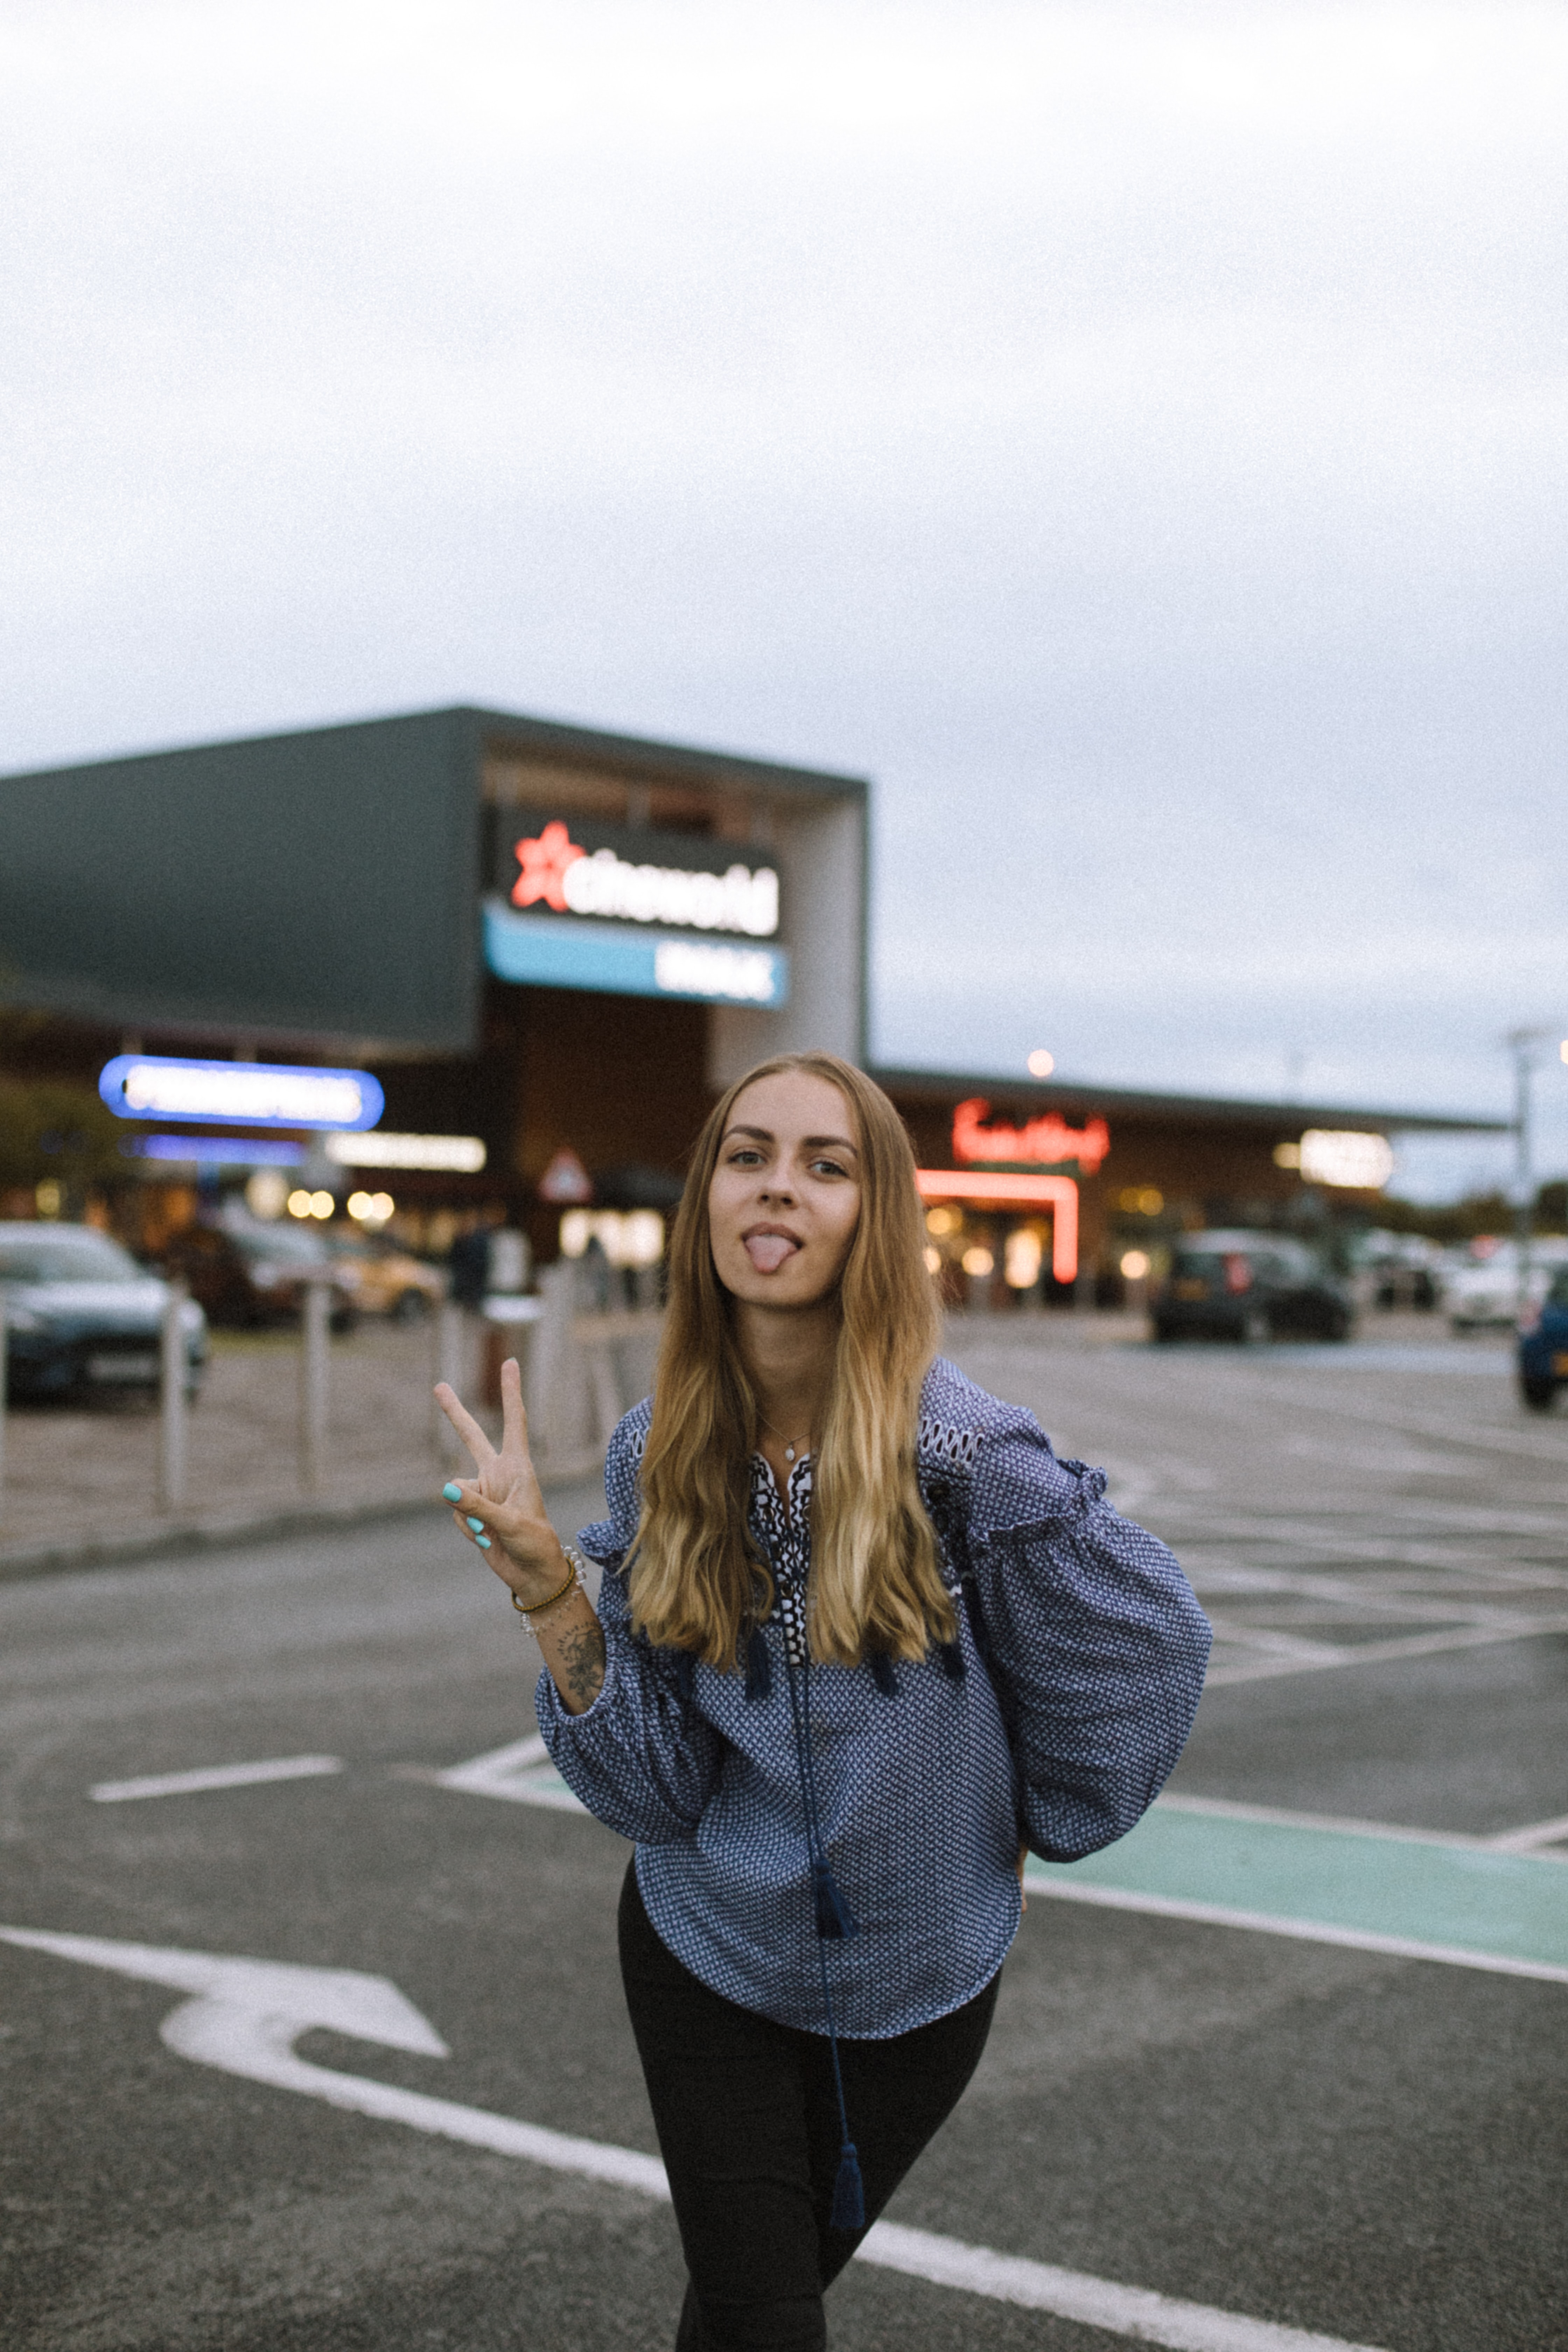 woman wearing blue jacket standing while doing peace hand sign